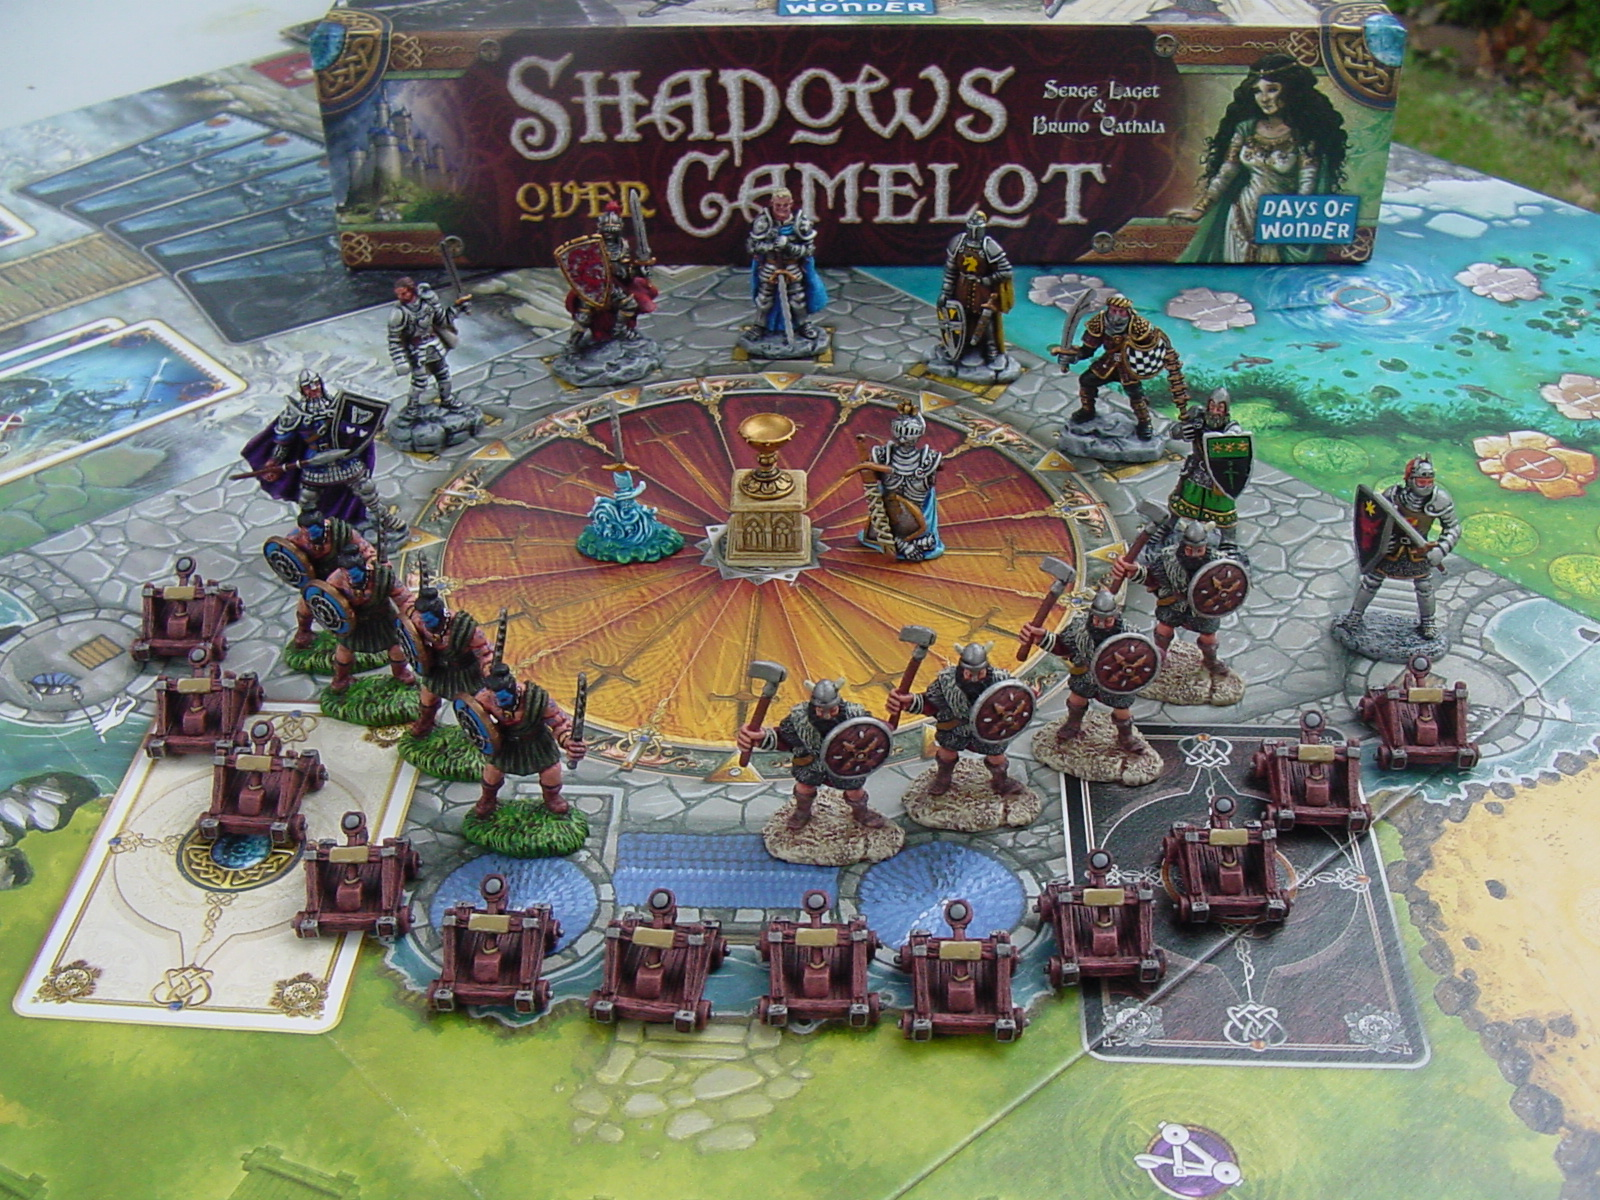 Game Night: Shadows Over Camelot